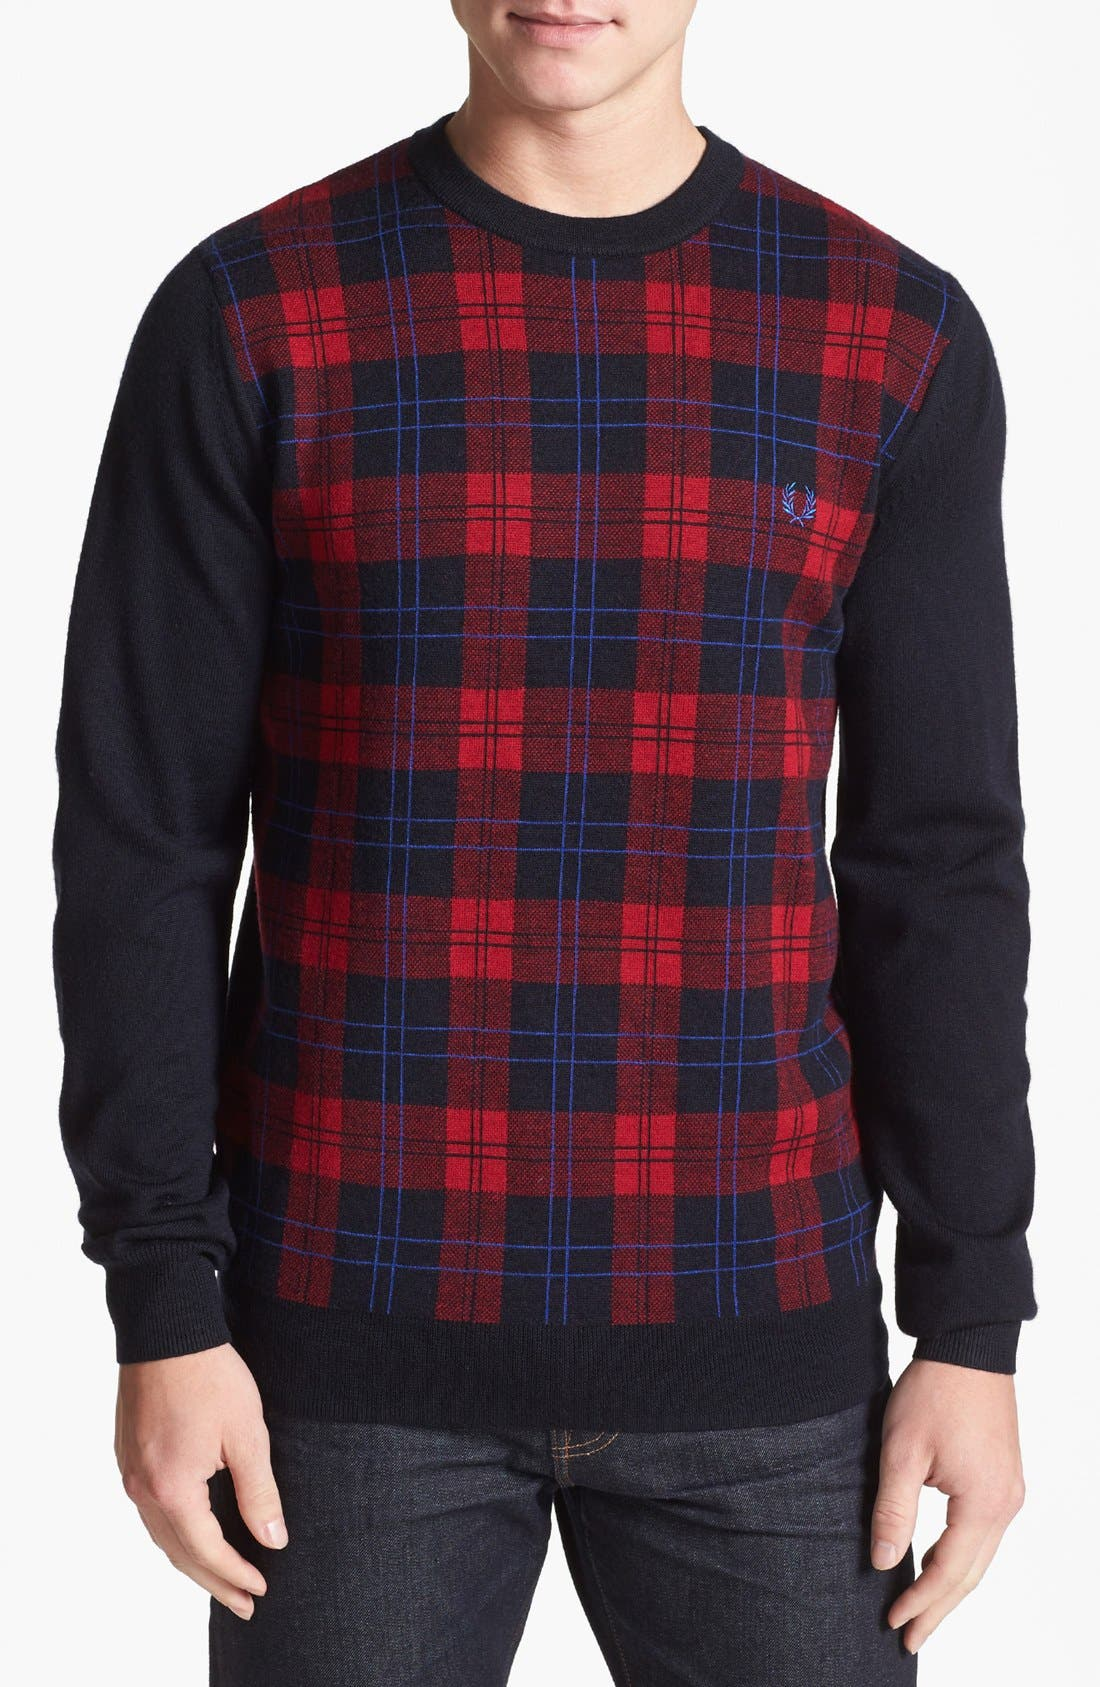 Alternate Image 1 Selected - Fred Perry Plaid Crewneck Sweater